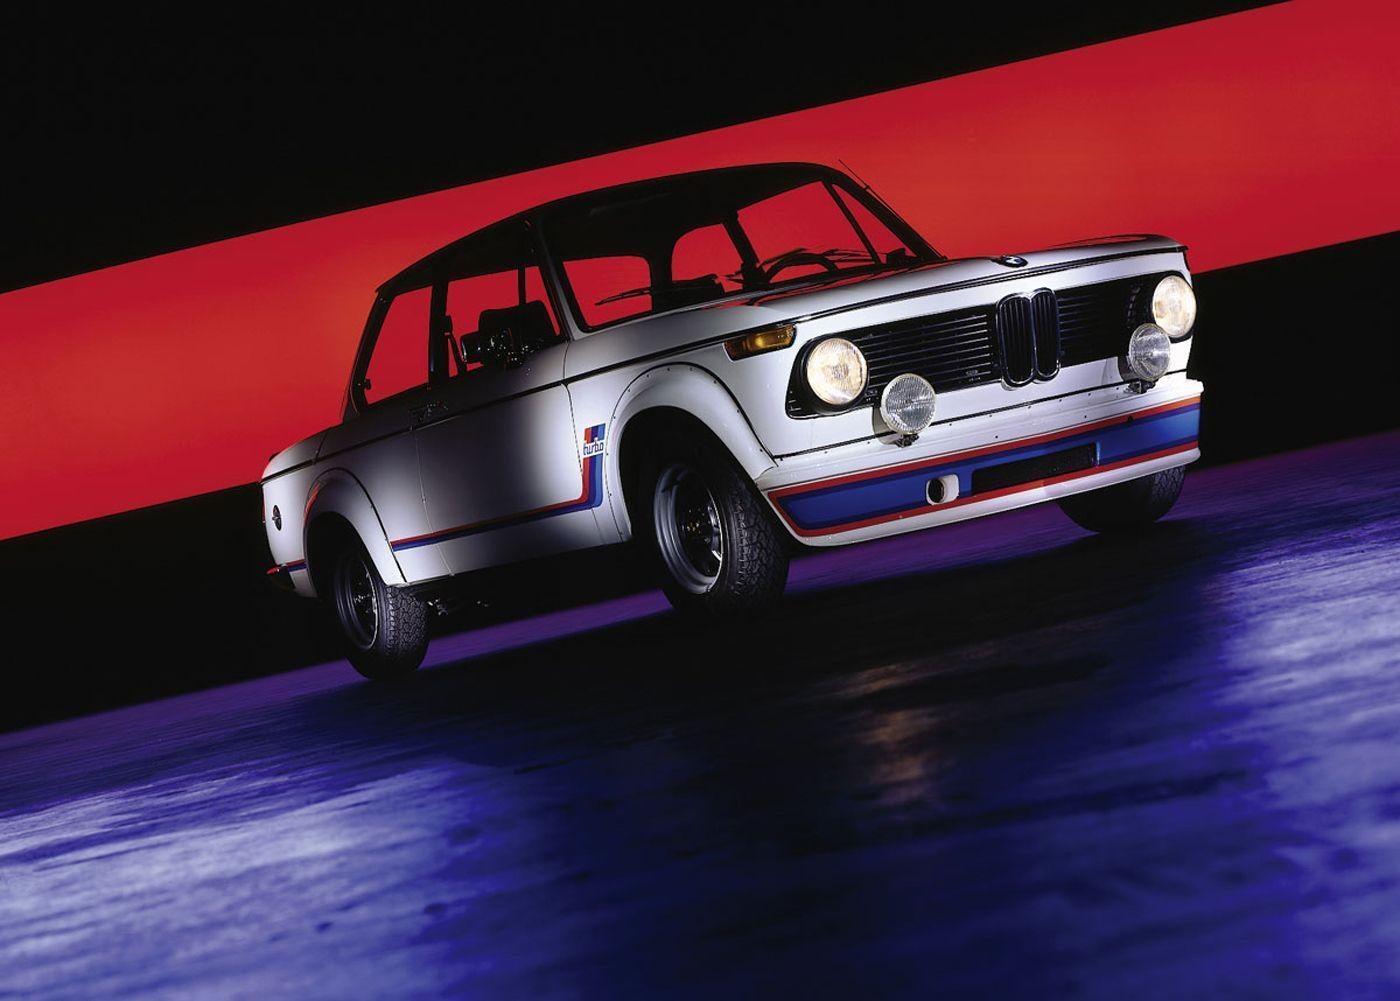 BMW 2002 Wallpapers - Wallpaper Cave